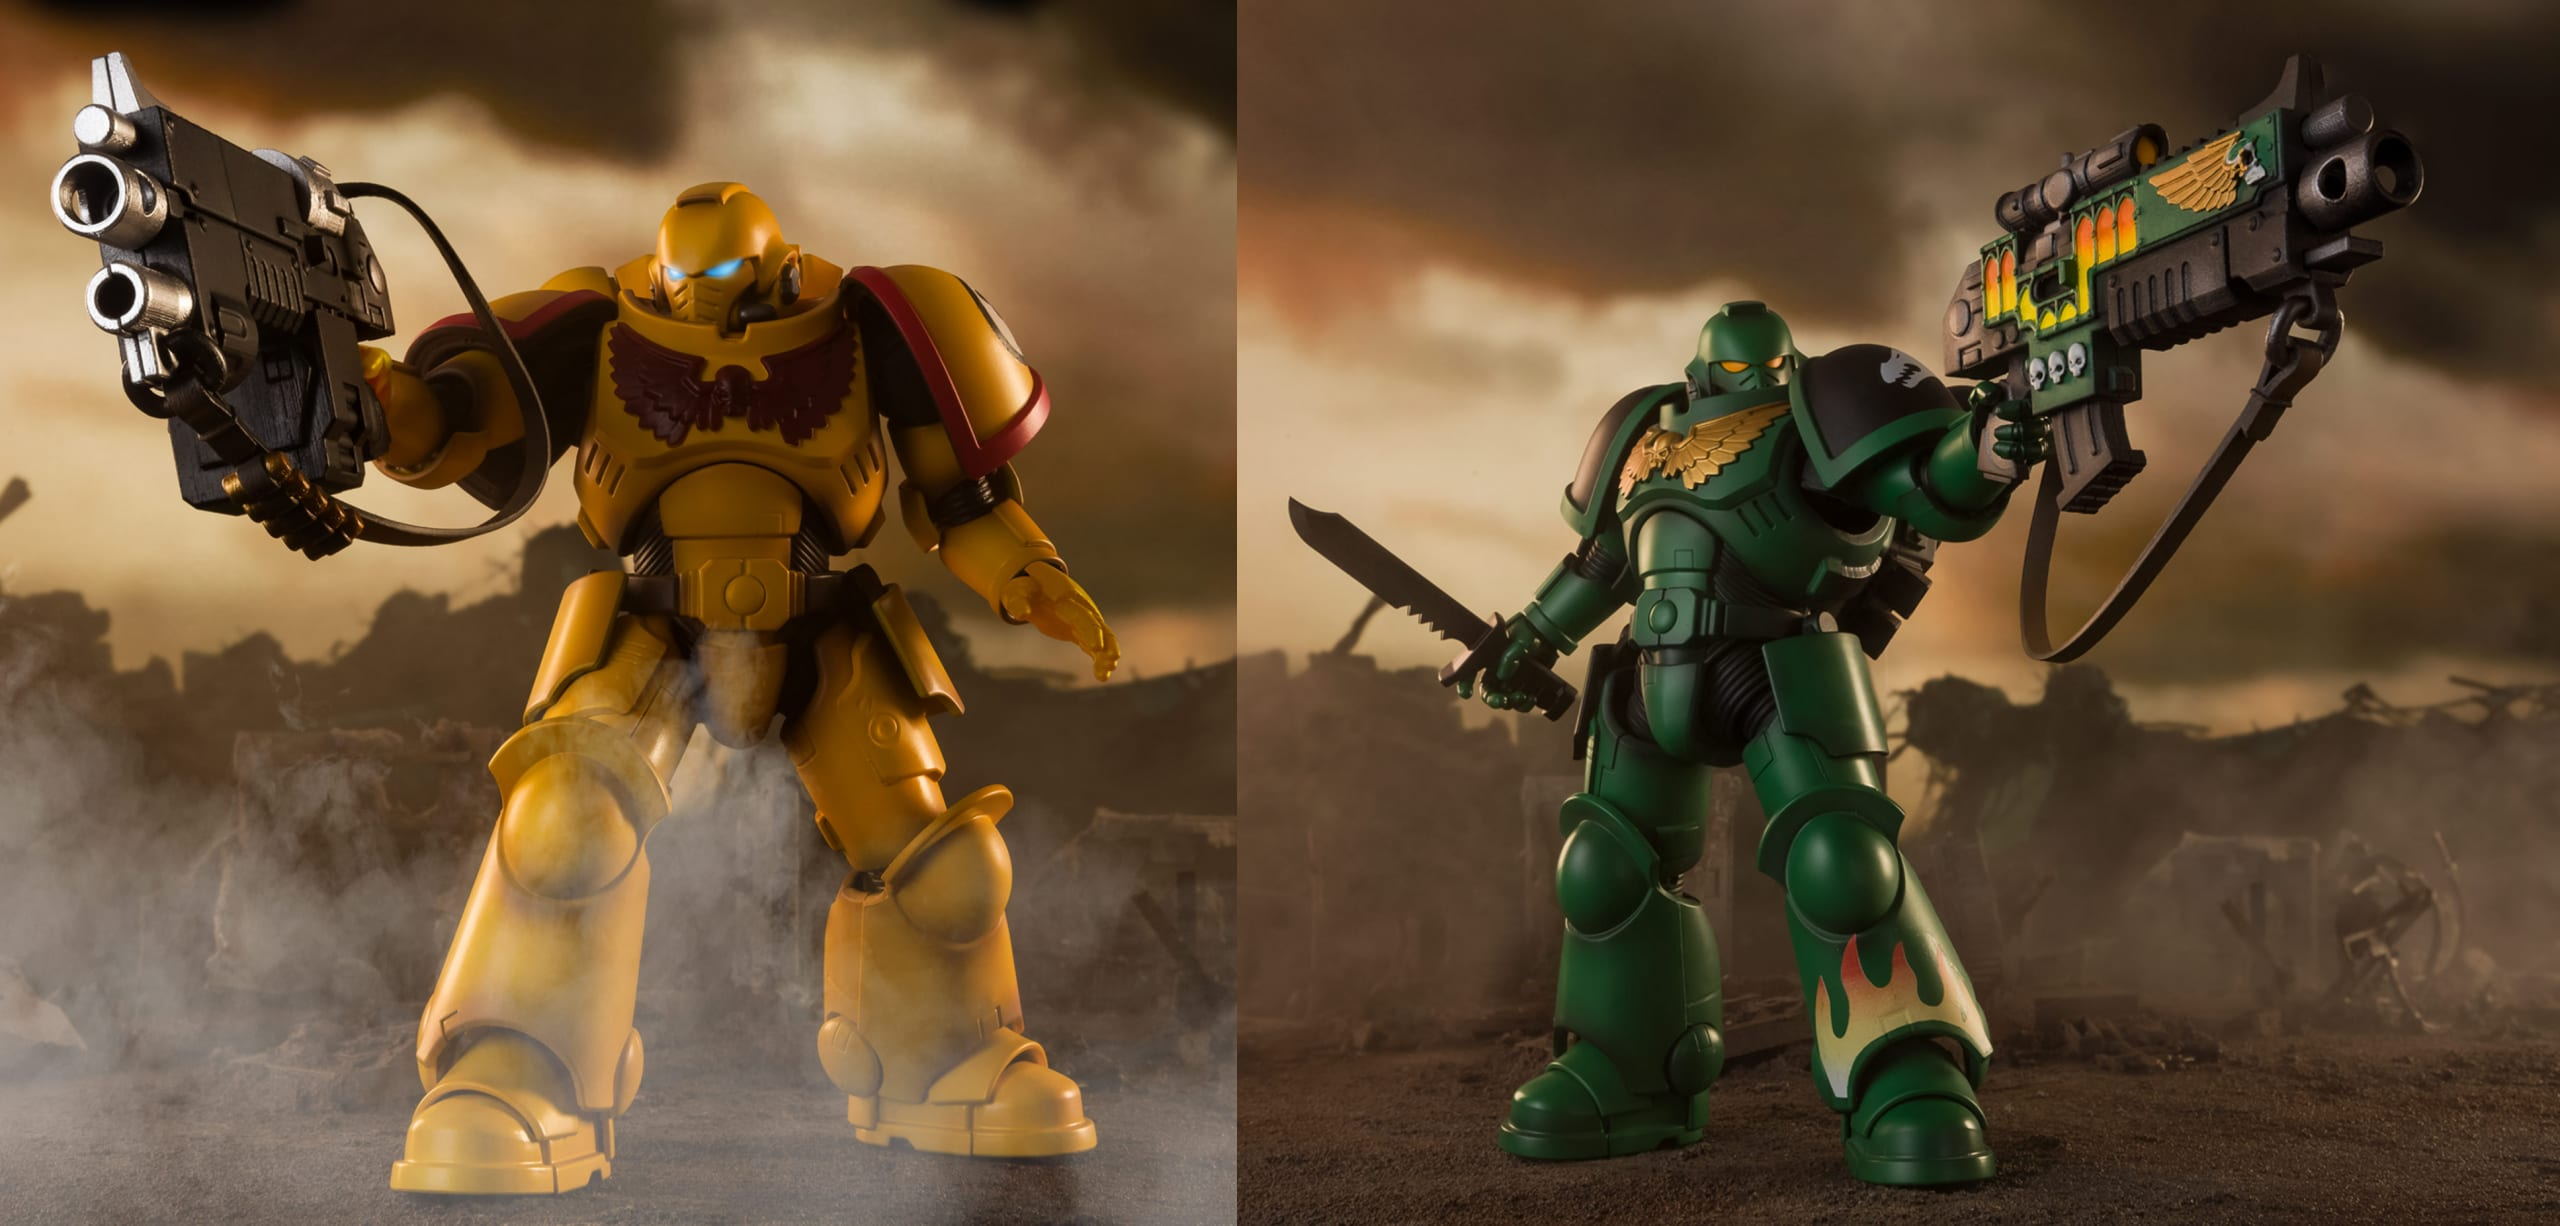 Le action figure di Warhammer 40,000 in edizione limitata